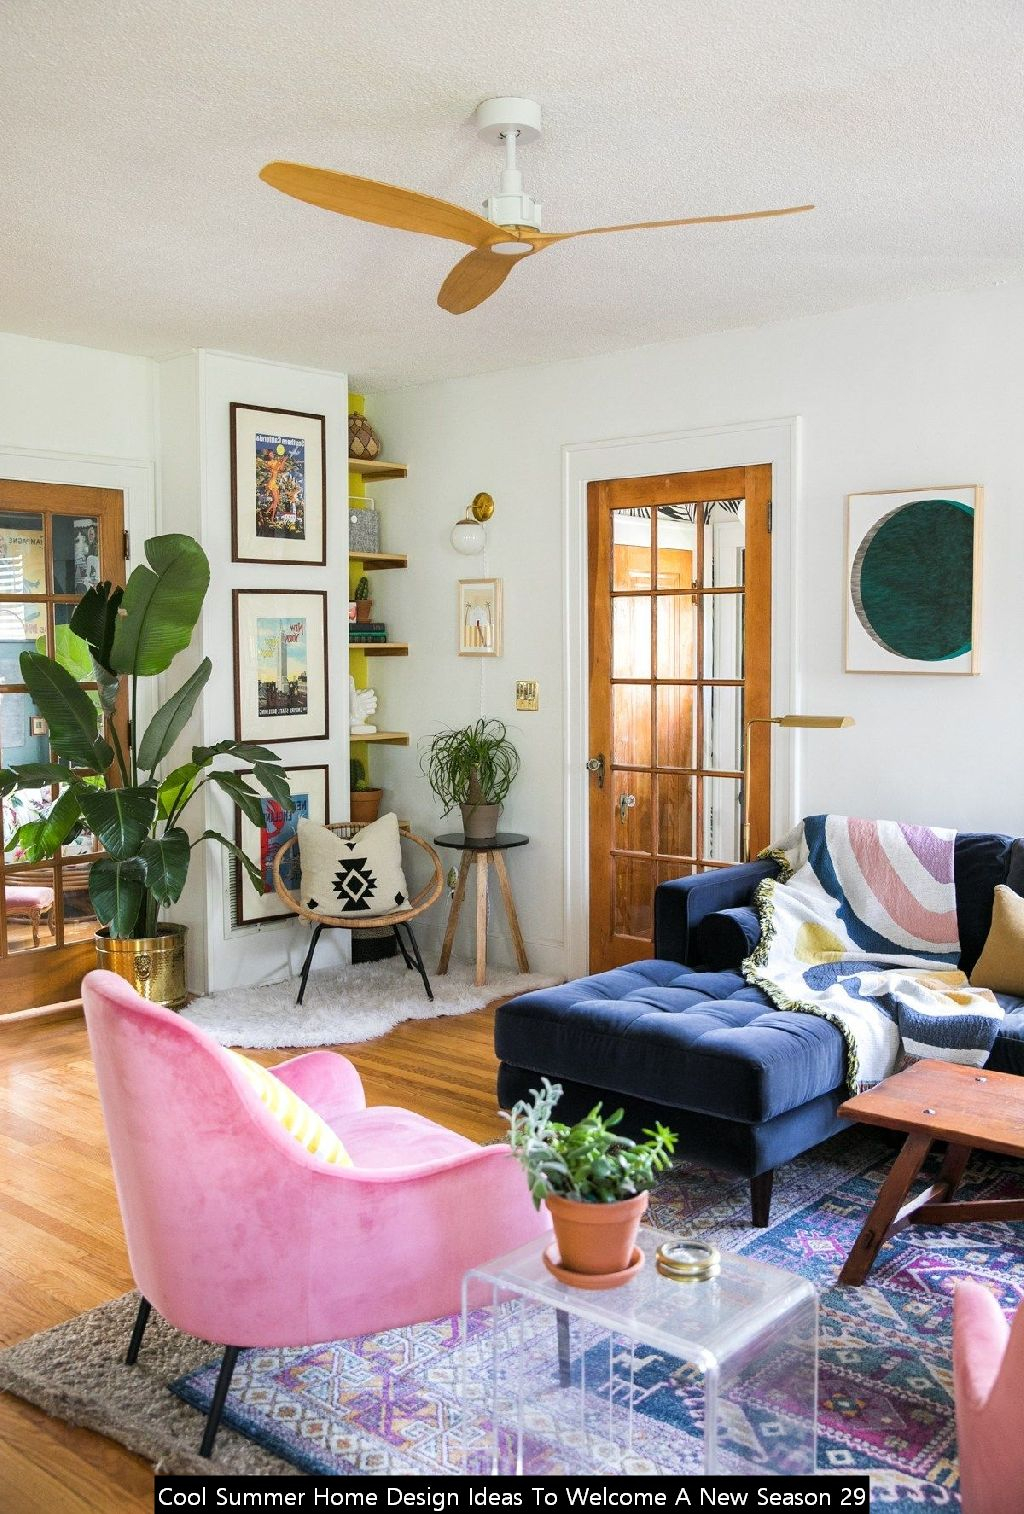 Cool Summer Home Design Ideas To Welcome A New Season 29